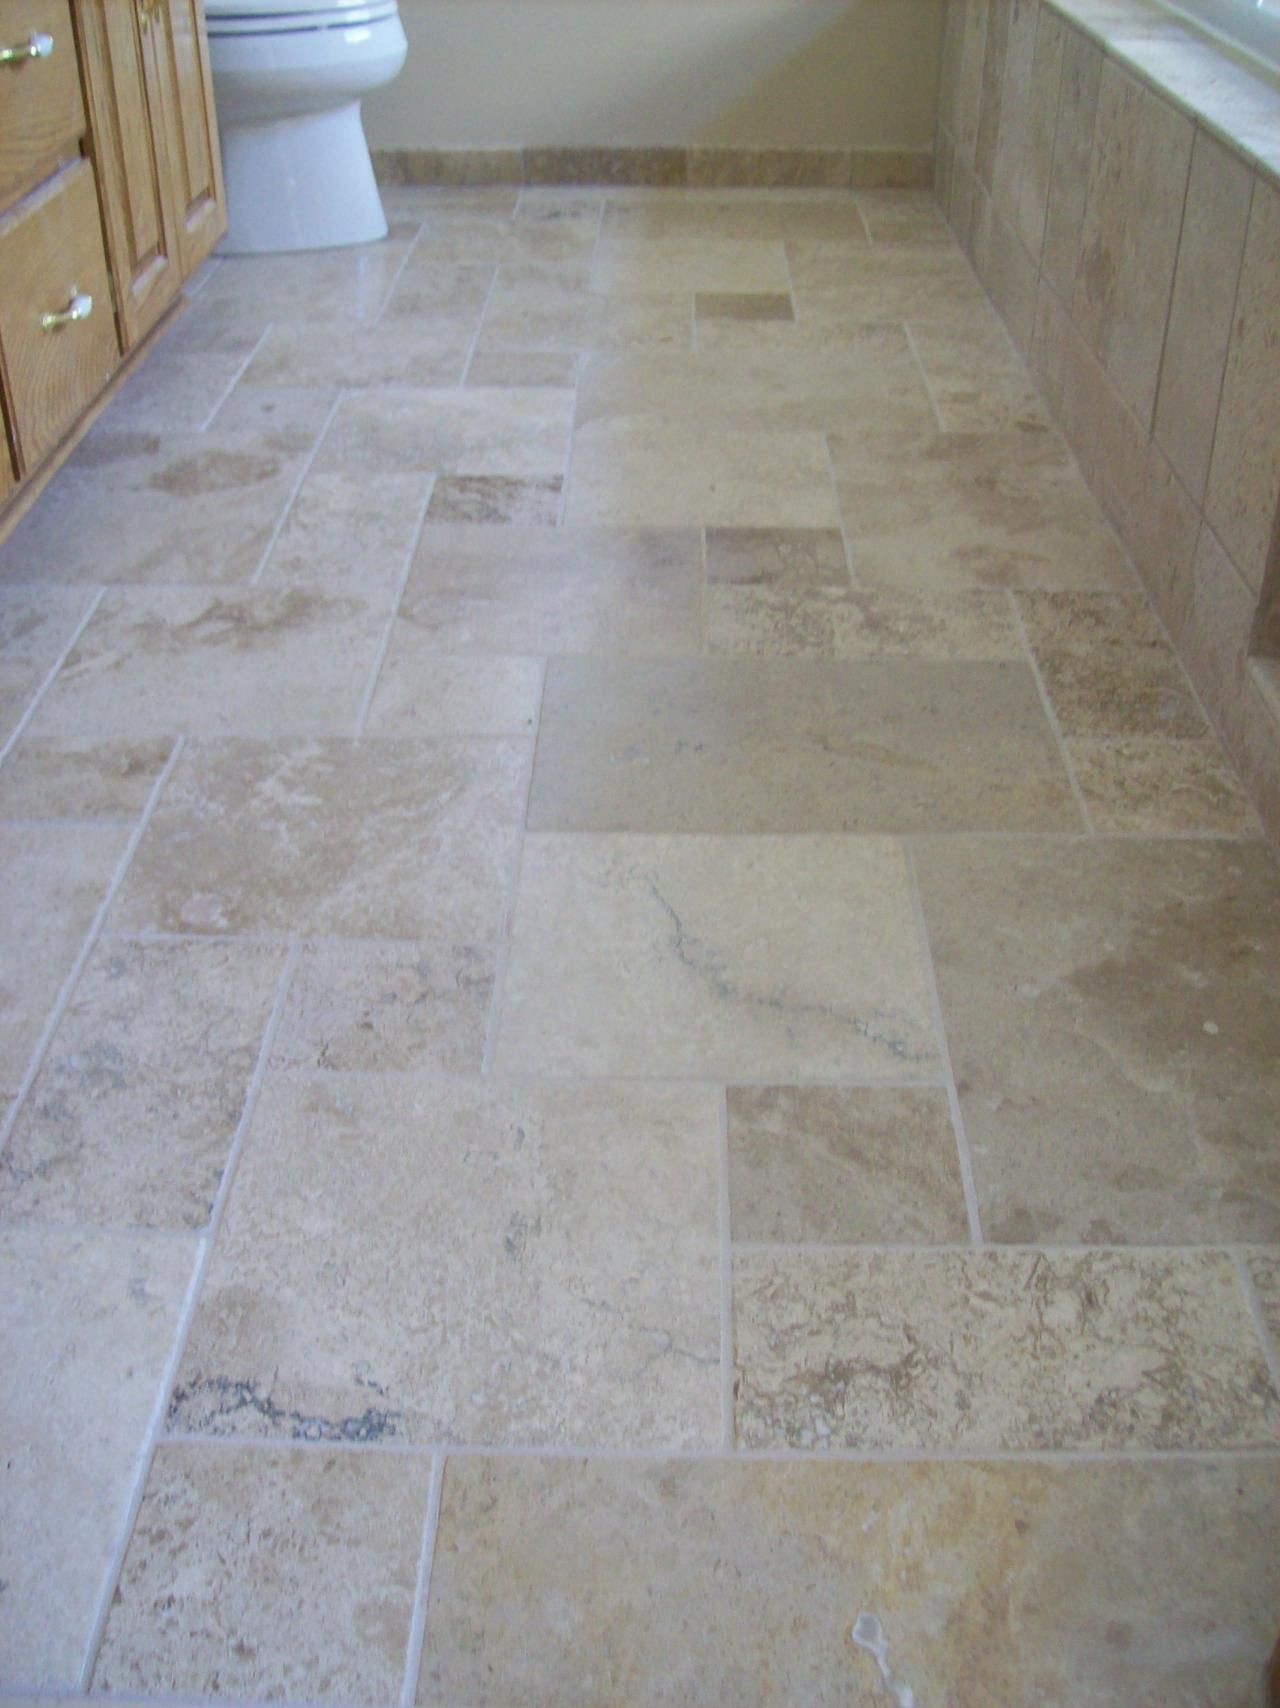 Travertine natural stone tile in the versaille pattern on the floor travertine natural stone tile in the versaille pattern on the floor dailygadgetfo Image collections